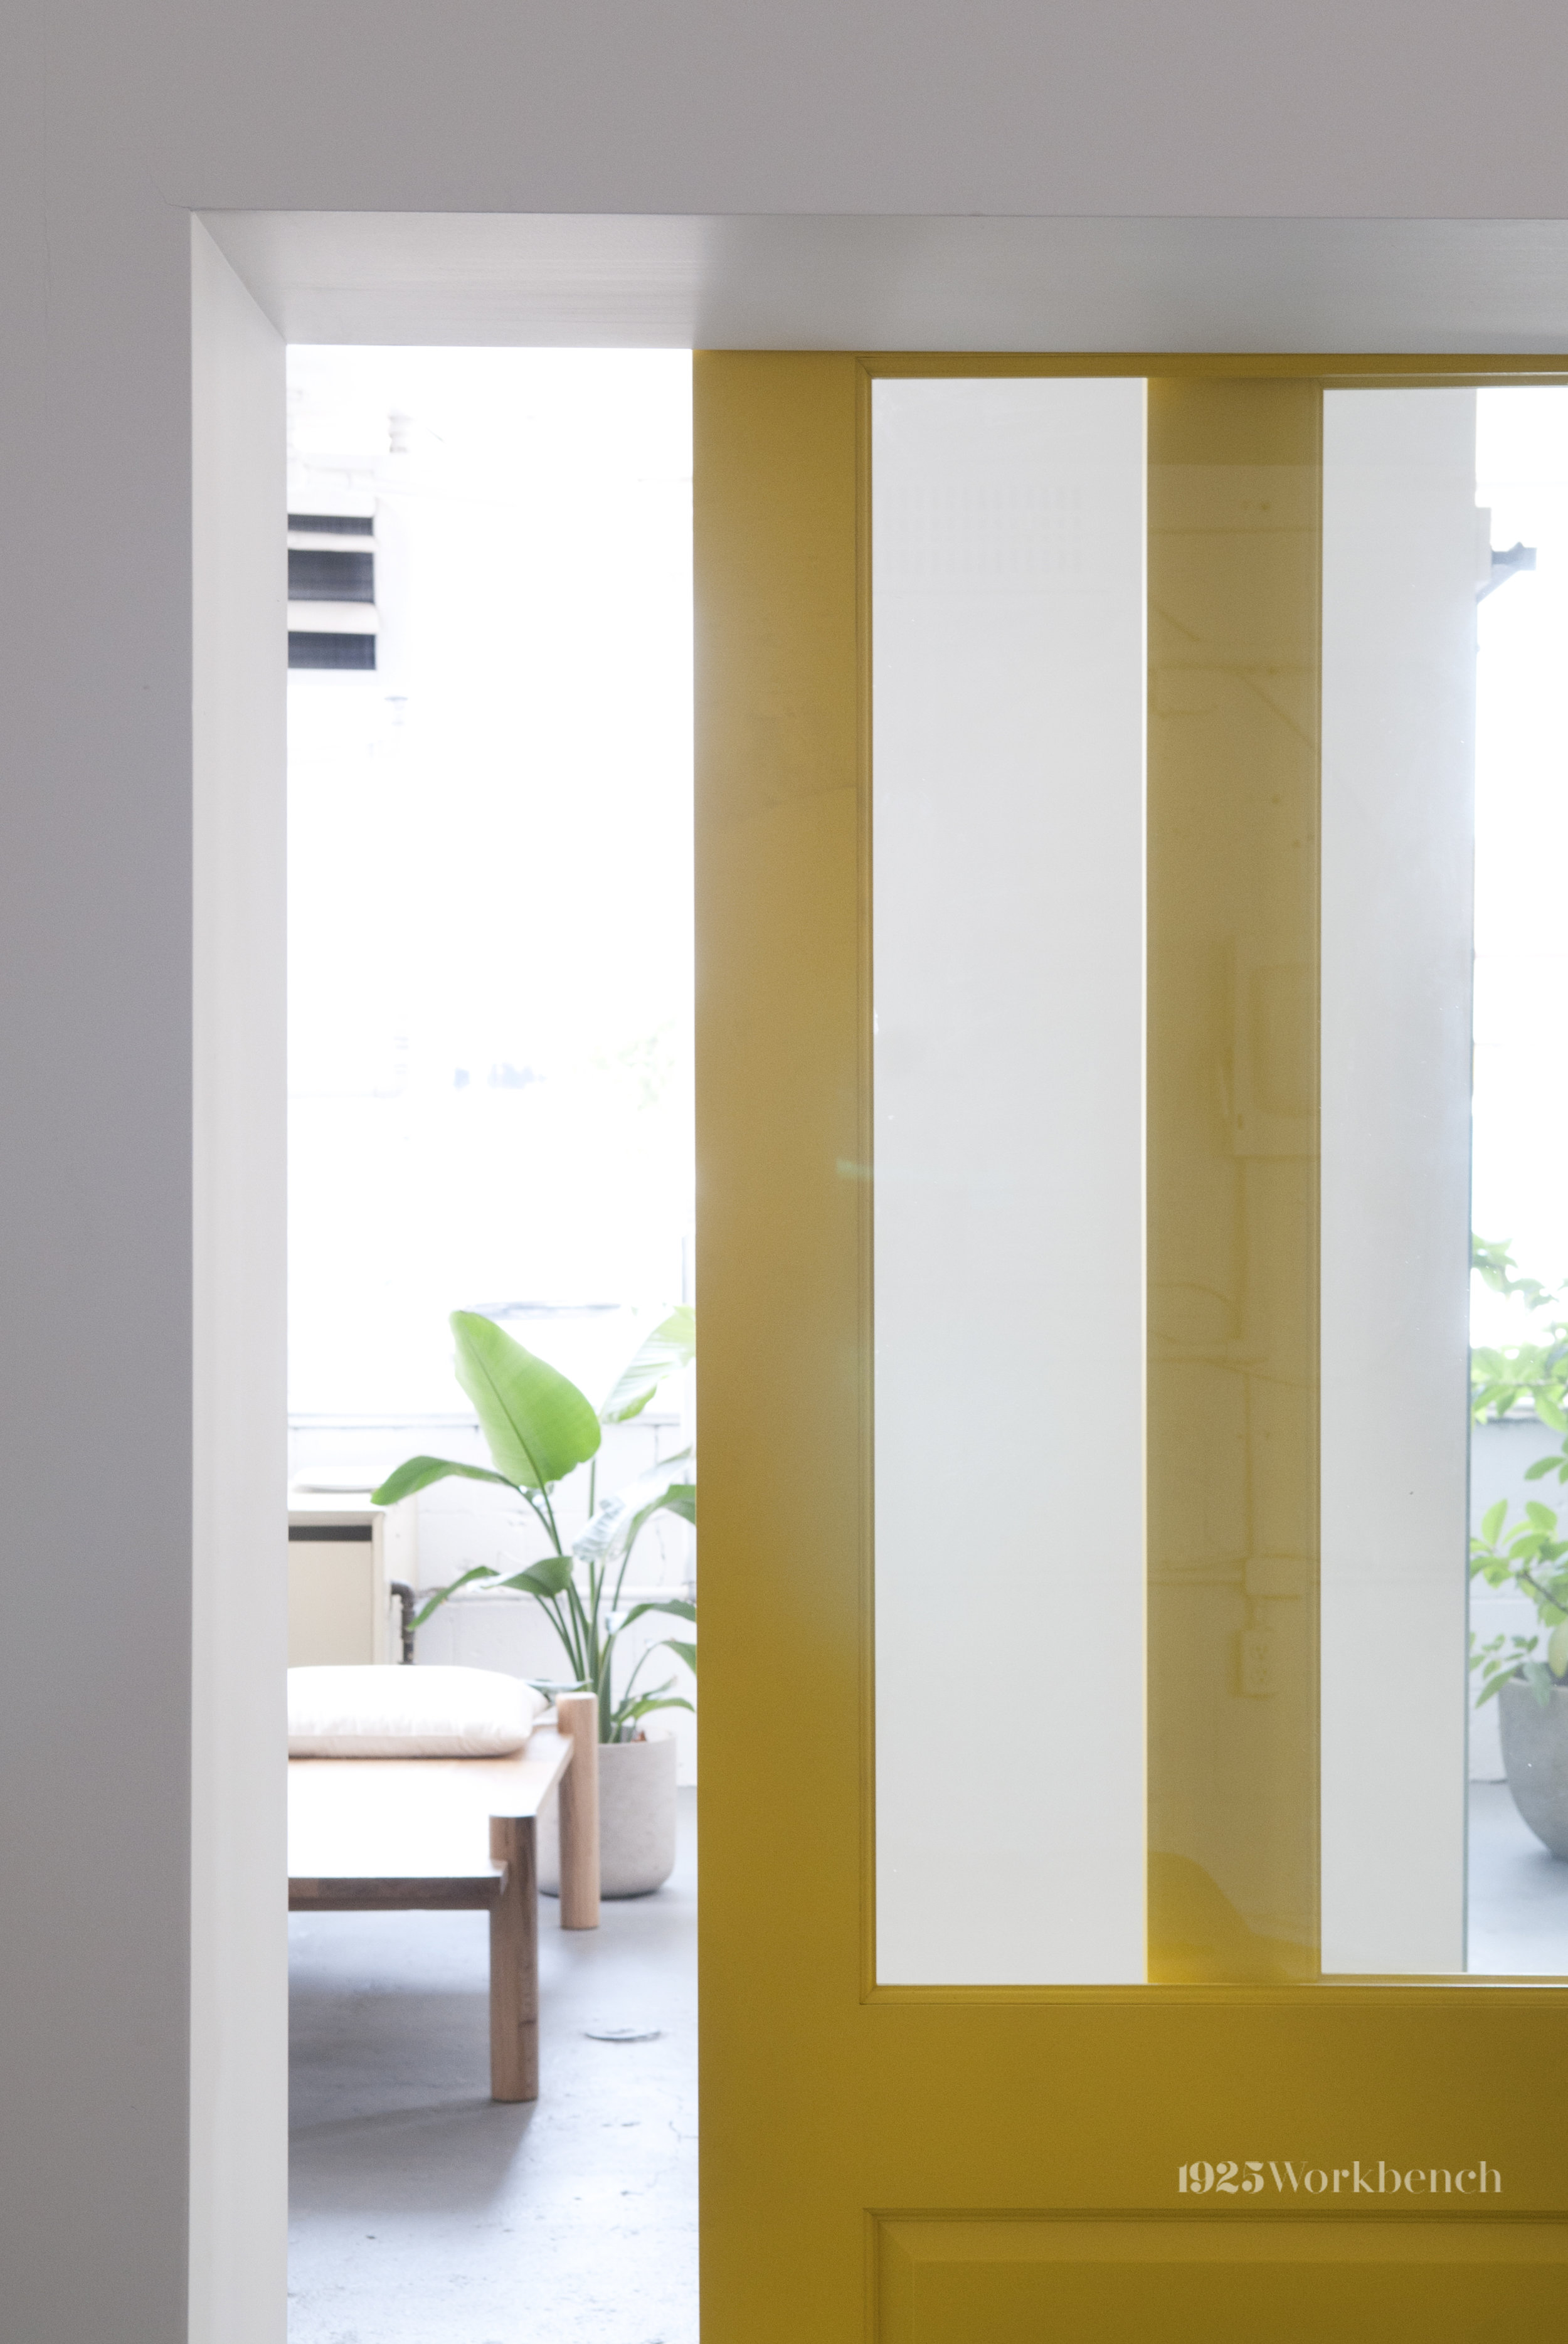 One view from the yellow doors where you see the daybed made of white oak, inspired by mid-day naps in Vietnam.